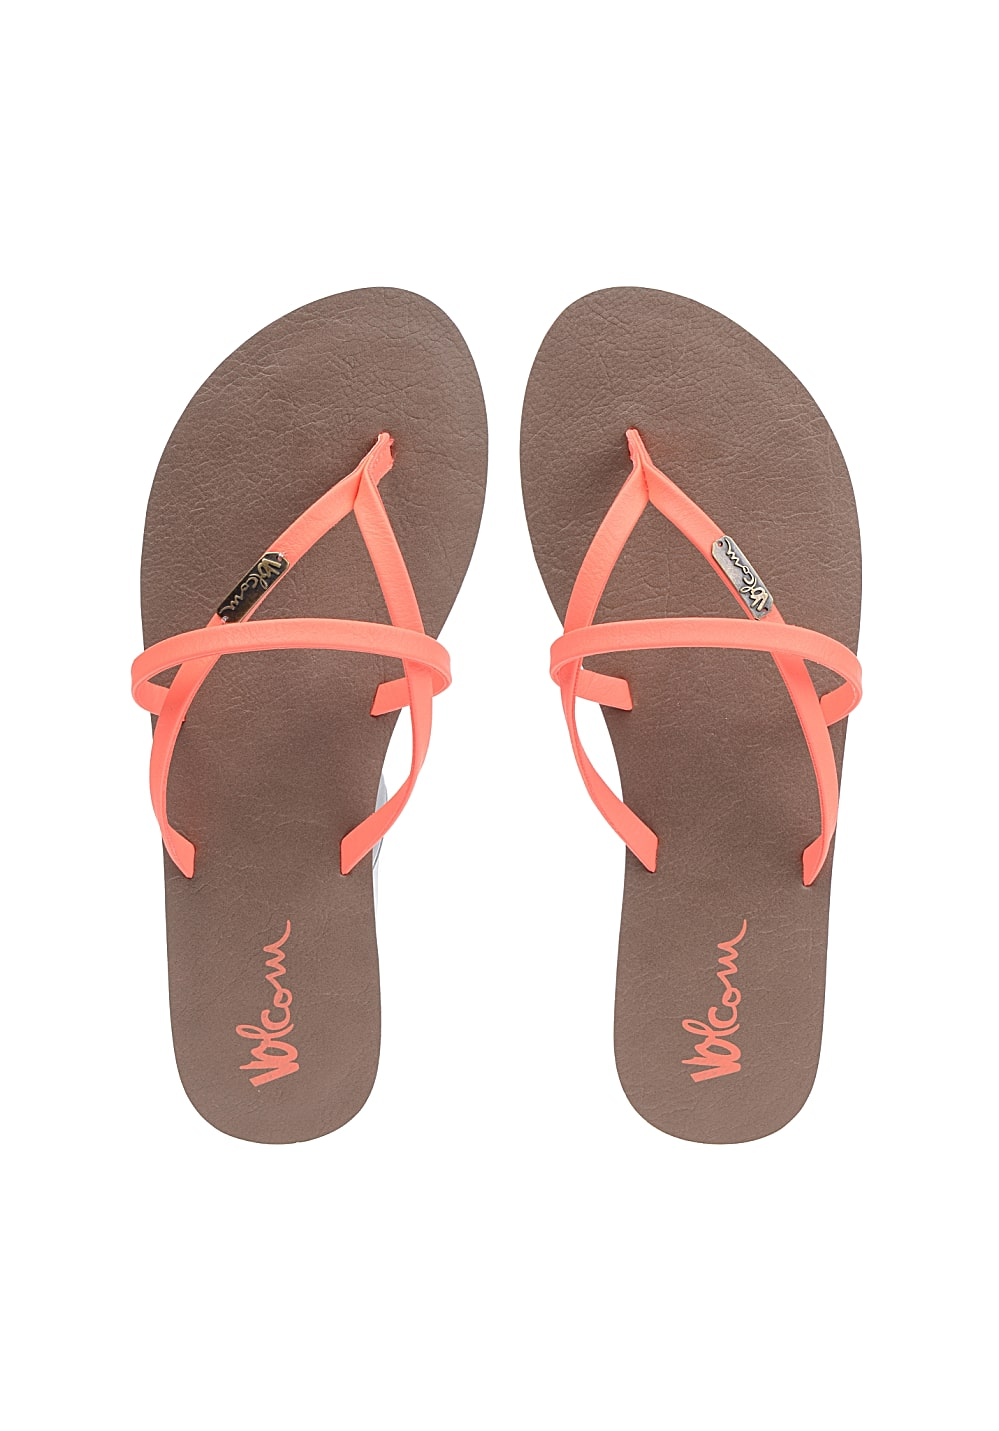 Volcom All Night Long - Sandalen für Damen - Rot - 36